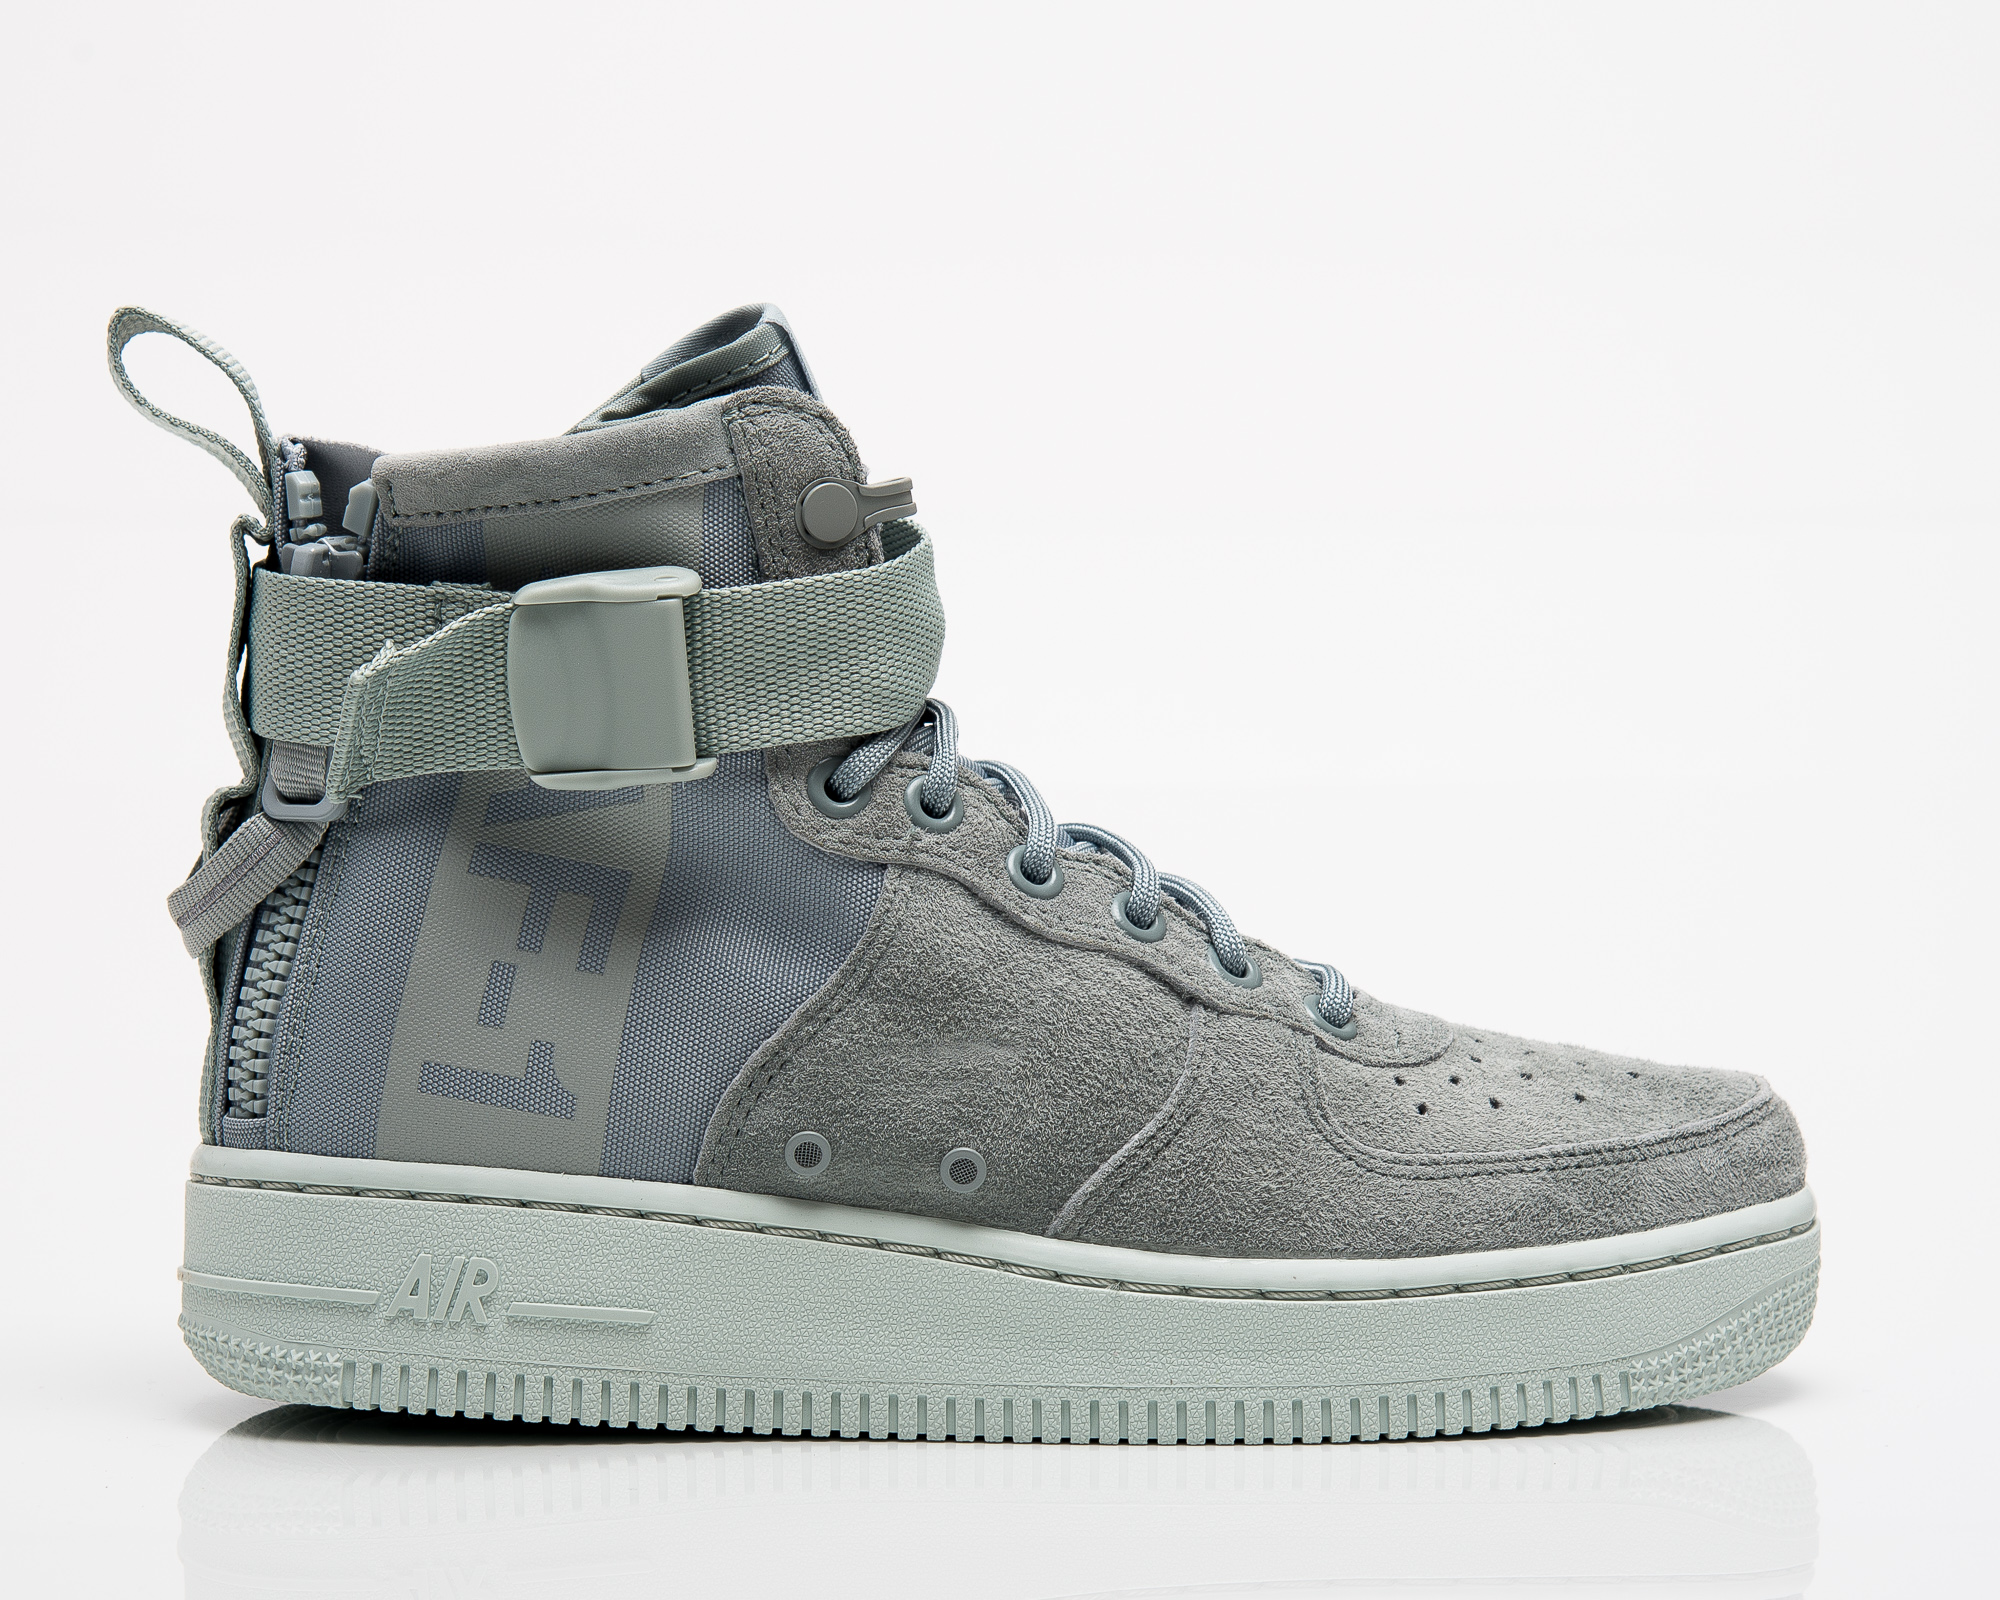 new arrival 16969 2d8d2 Nike Wmns SF Air Force 1 Mid - Shoes Casual - Sporting goods ...